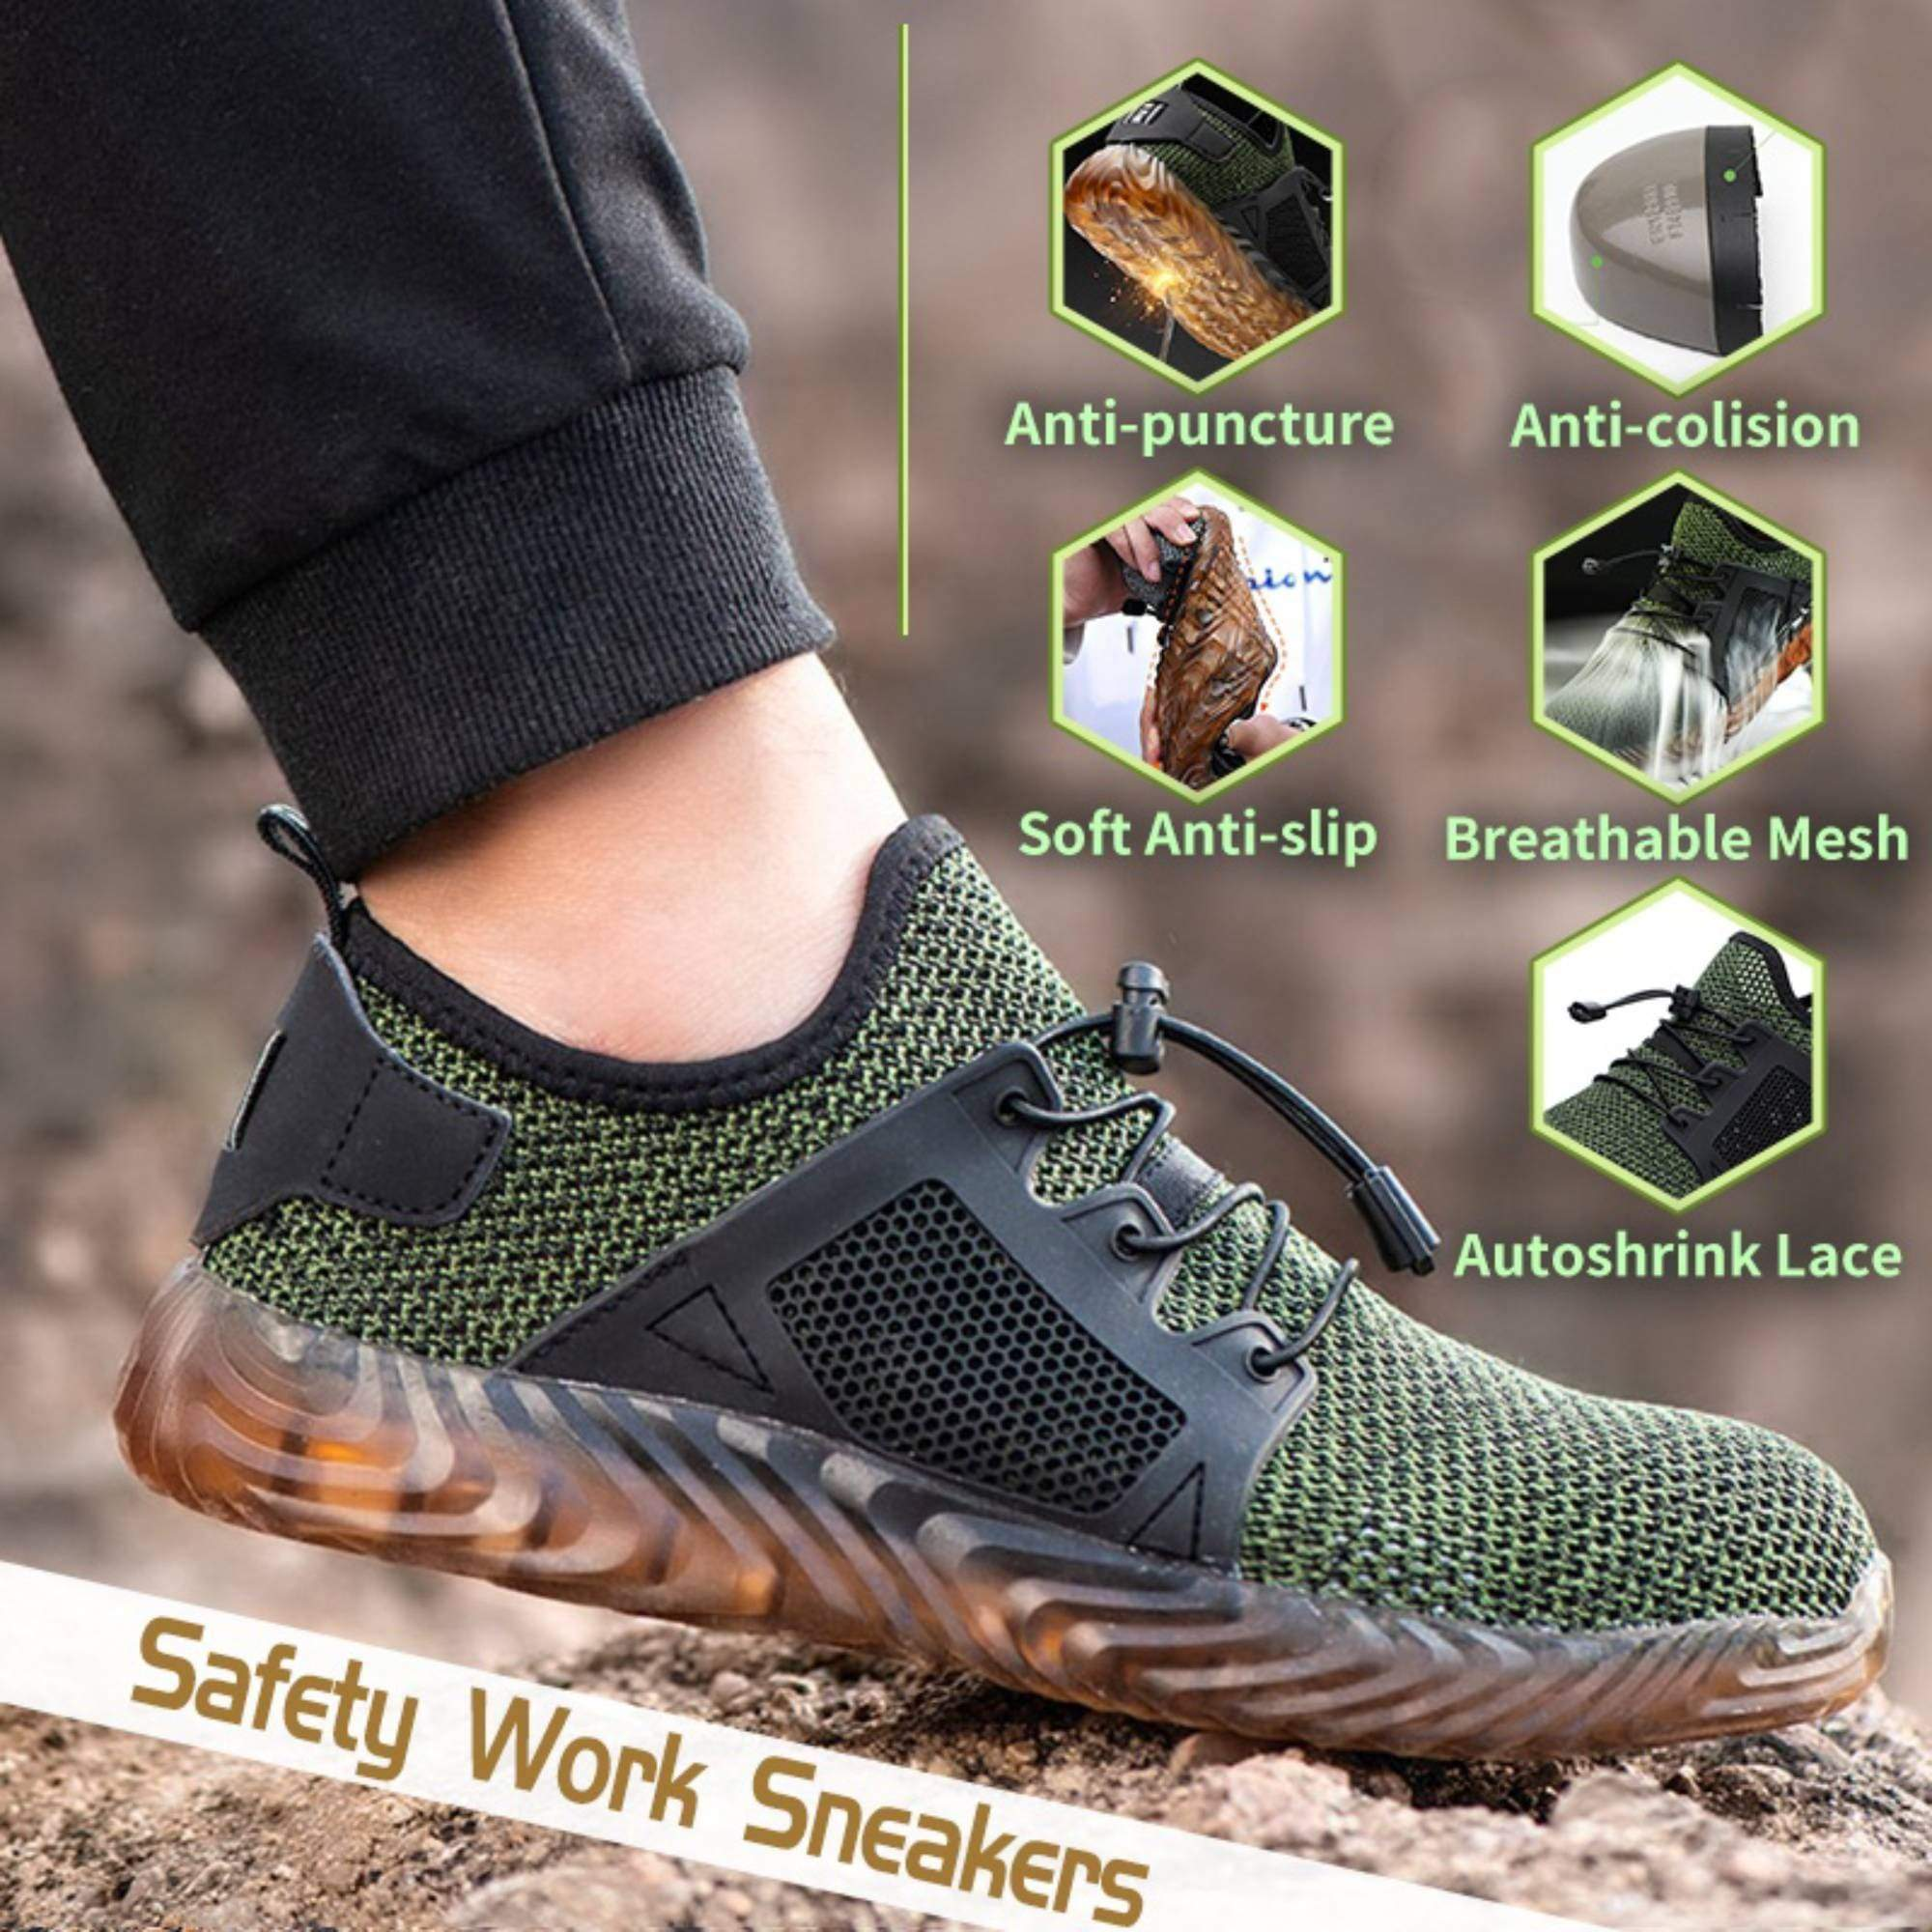 Redfoot Footwear Black Safety Shoes Steel Toe Cap Work Protective Trainers - Only £19.99